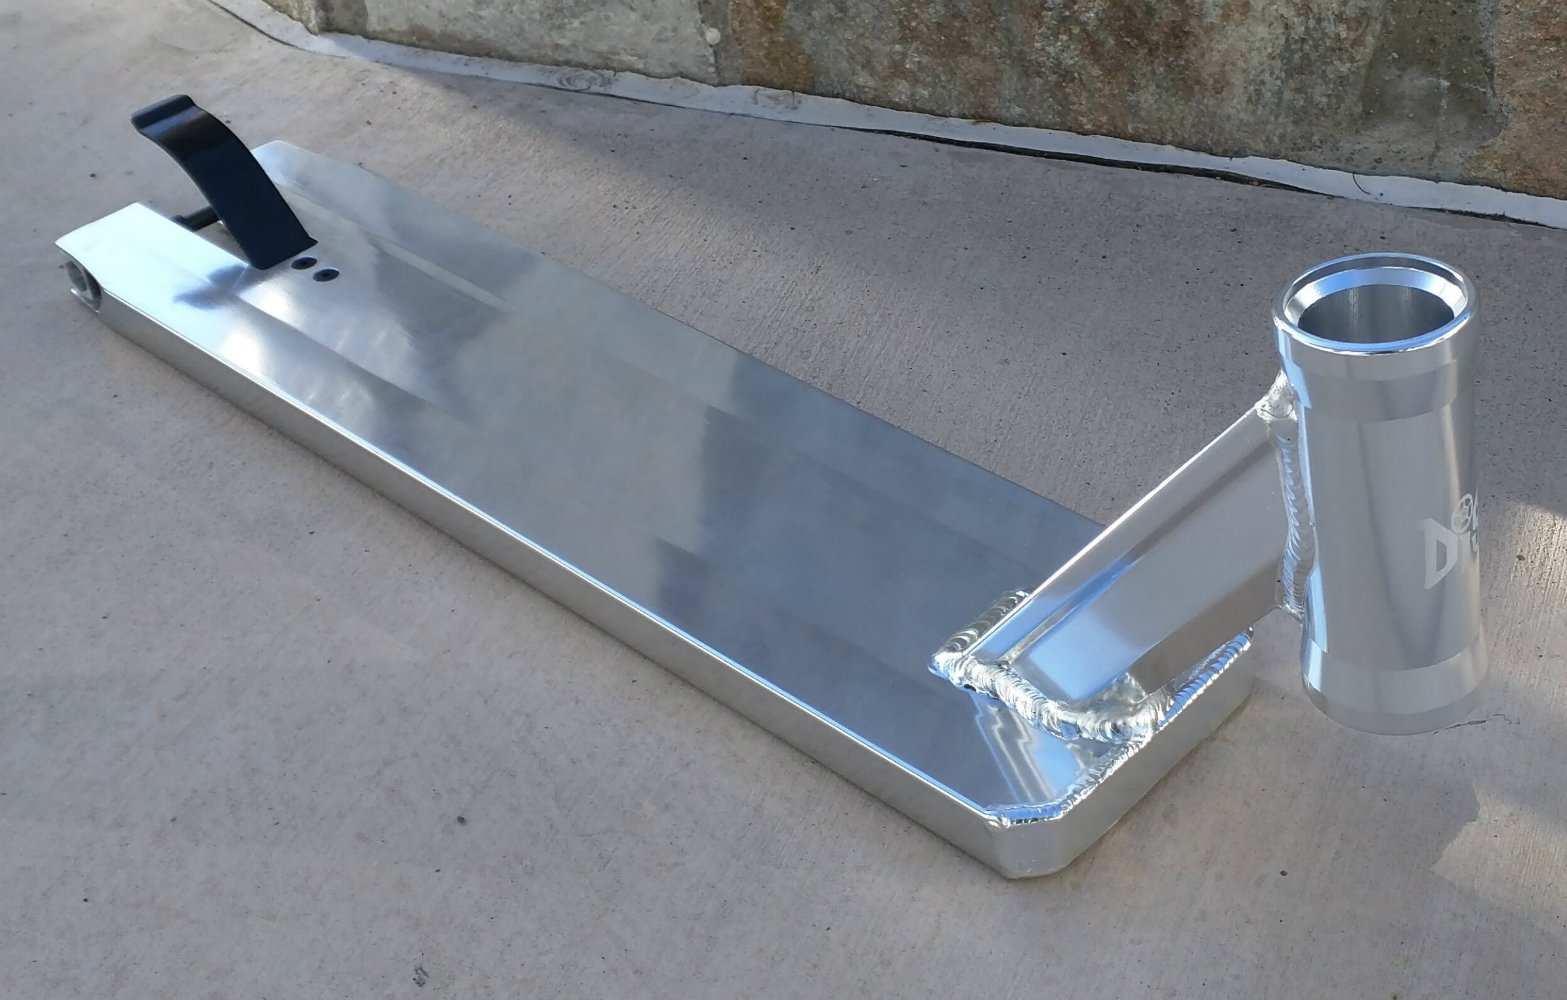 DIS Street Scooter Deck - Silver 5.0 inches wide - 21.0 inches long by DropIn Scooters